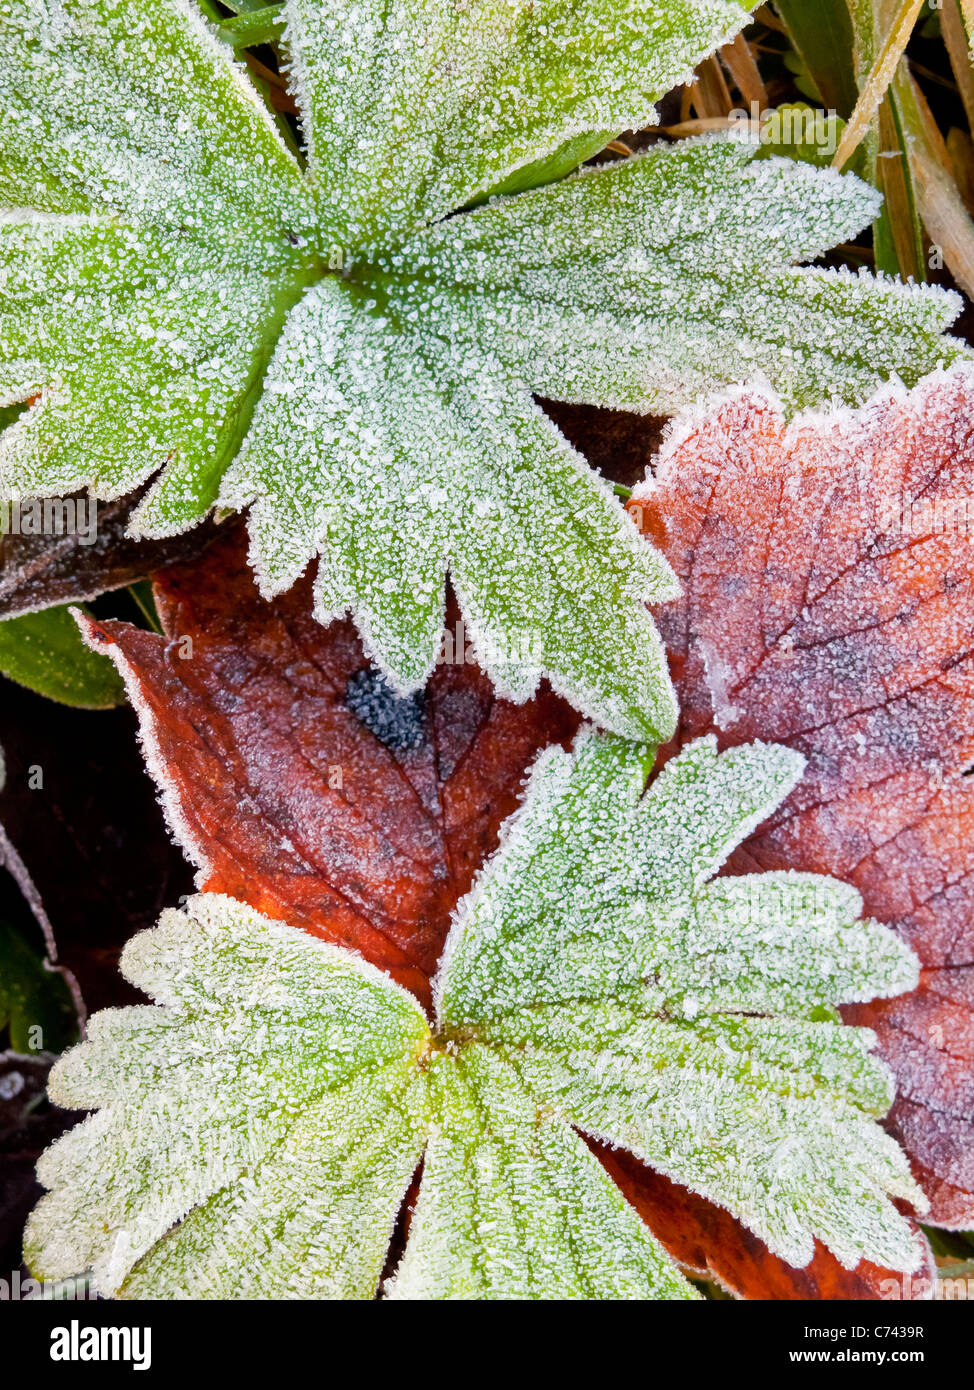 Detail of frost covered autumn leaves in the Derbyshire Peak District England UK Stock Photo